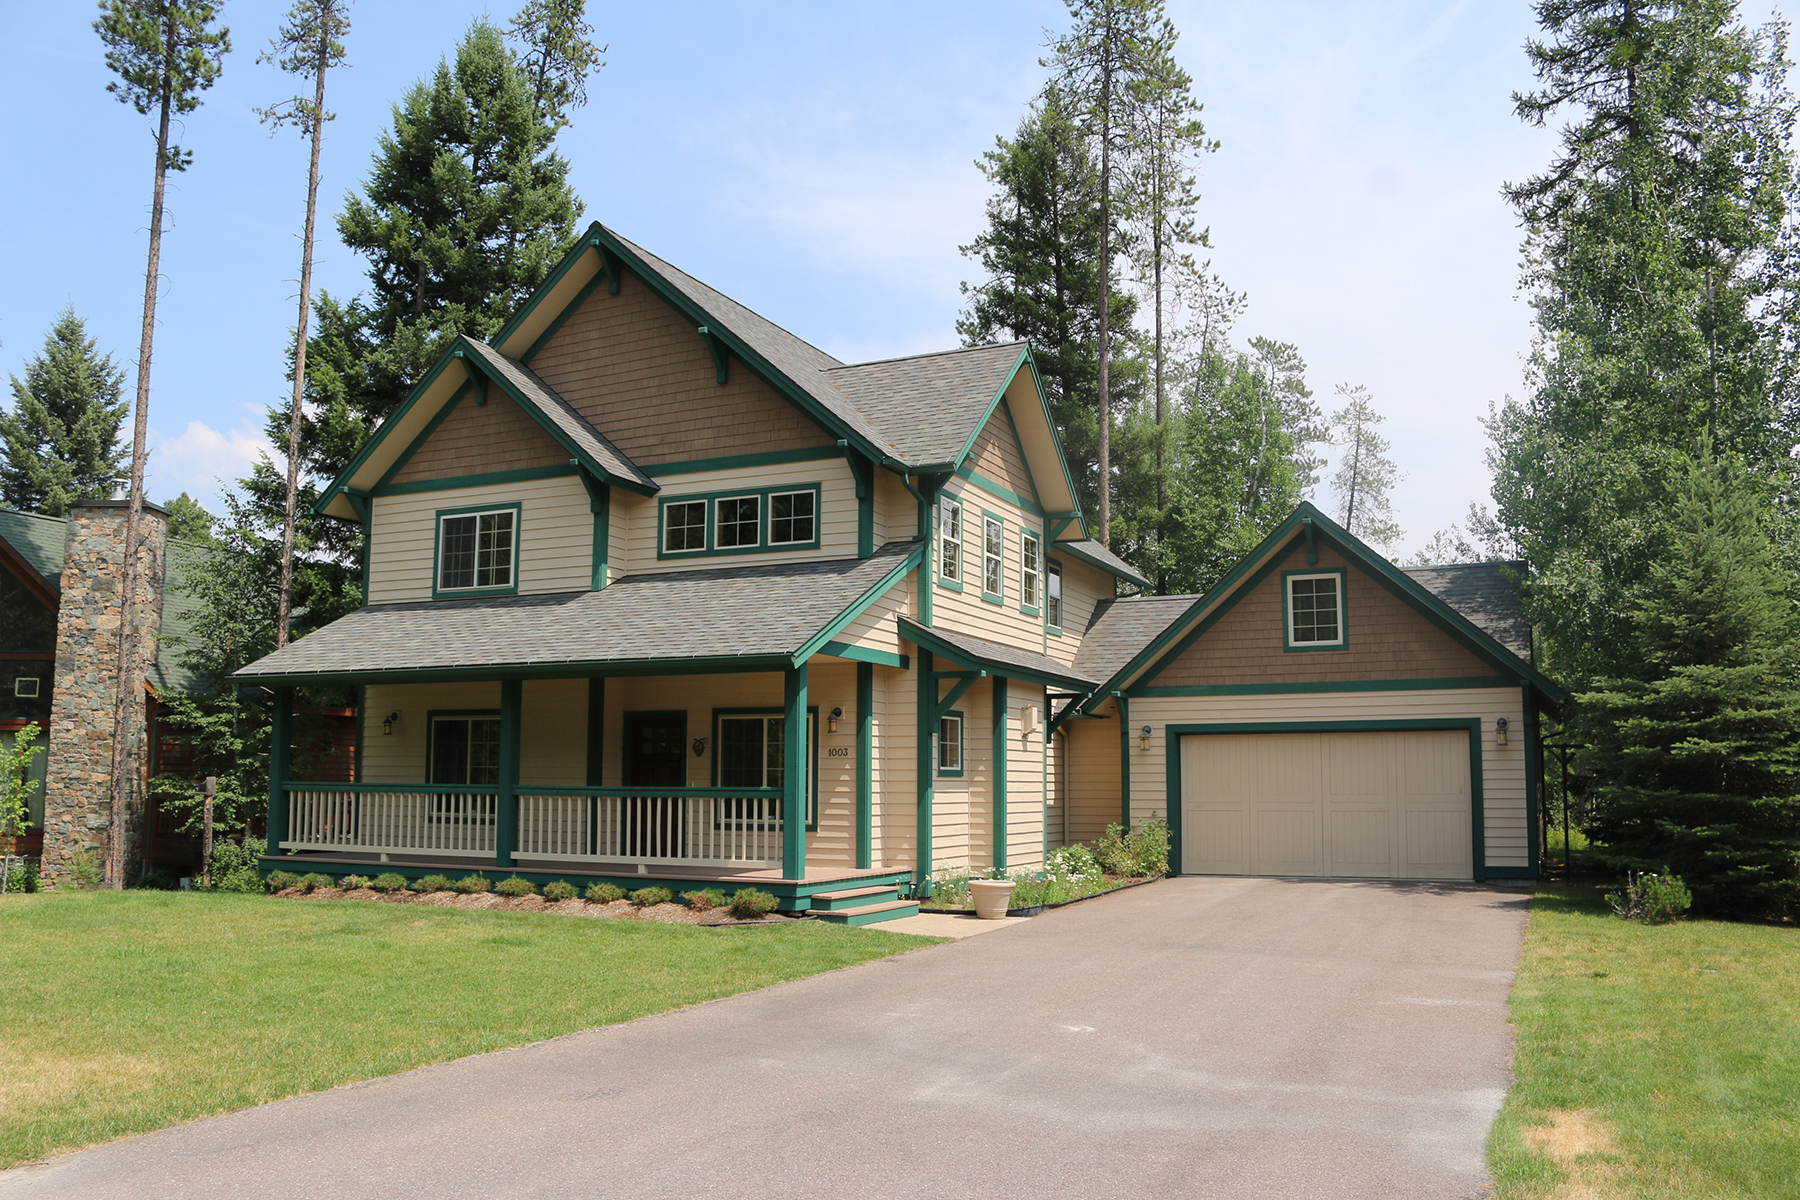 Single Family Home for Sale at Custom Built Home 1003 Mountain Park Drive Whitefish, Montana 59937 United States